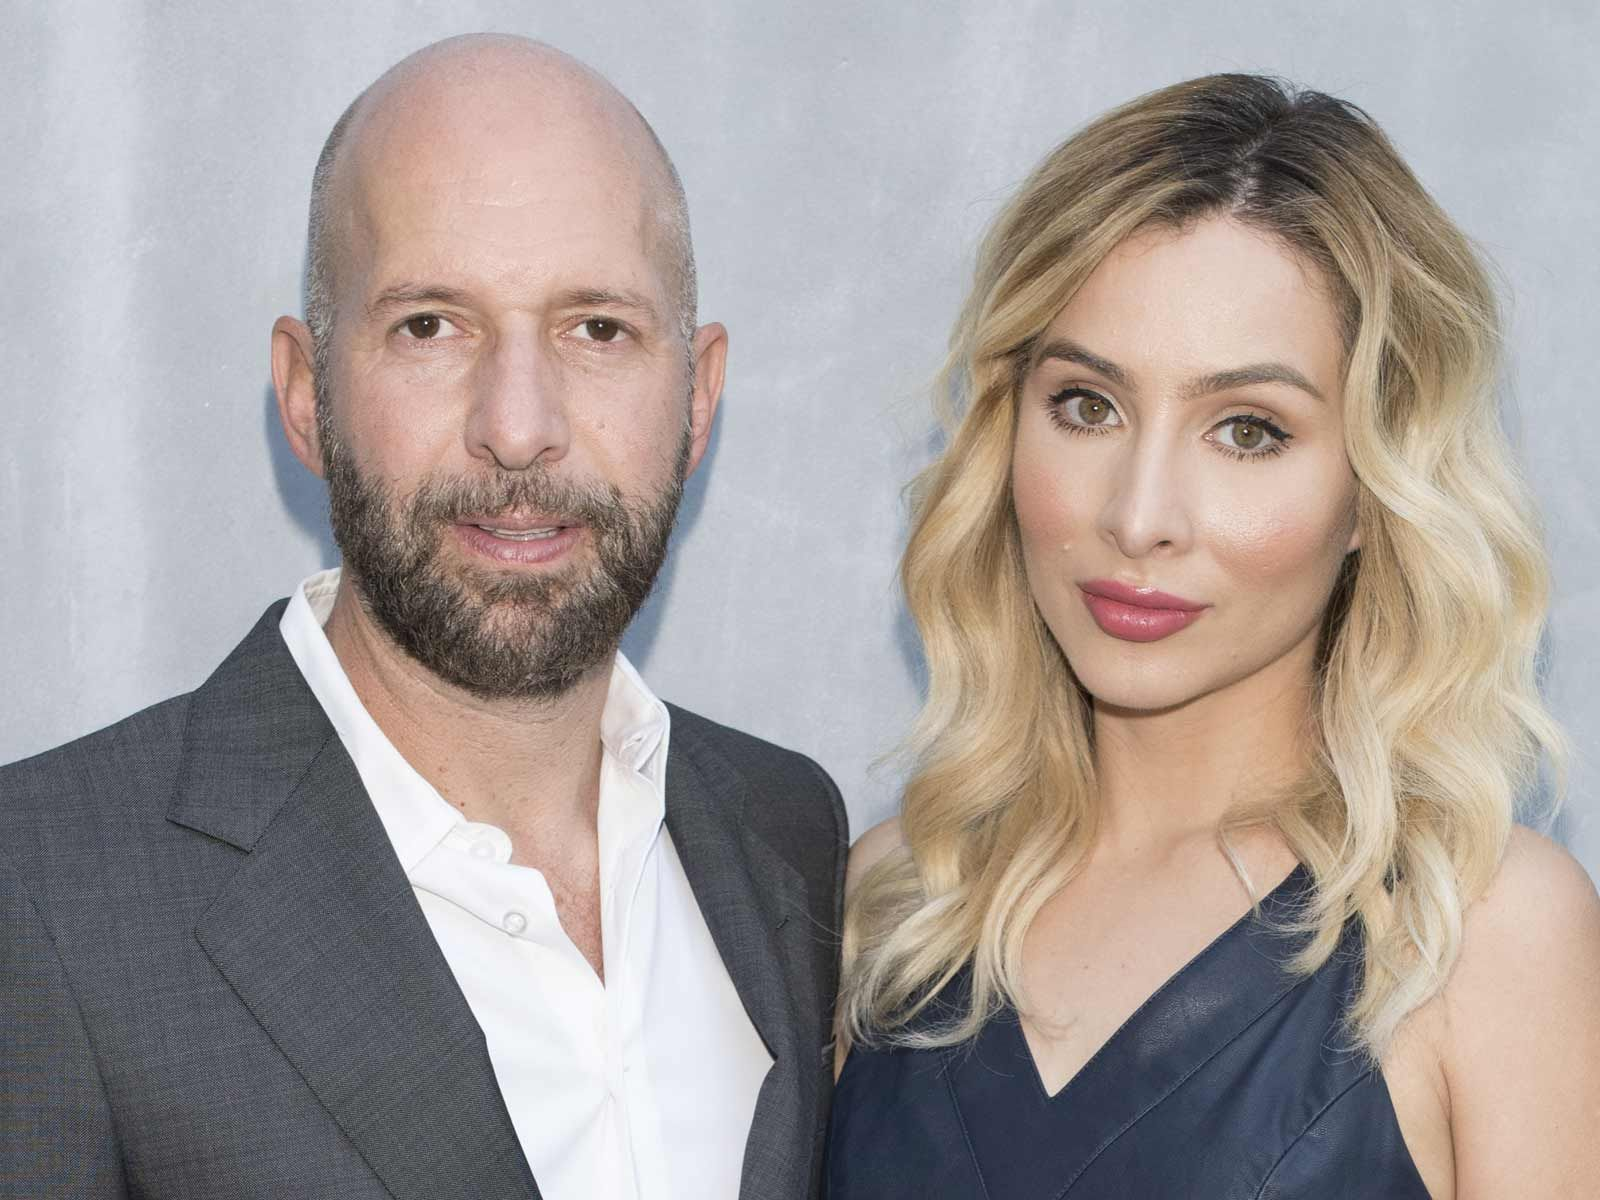 Famous Pickup Artist Neil Strauss Files for Divorce